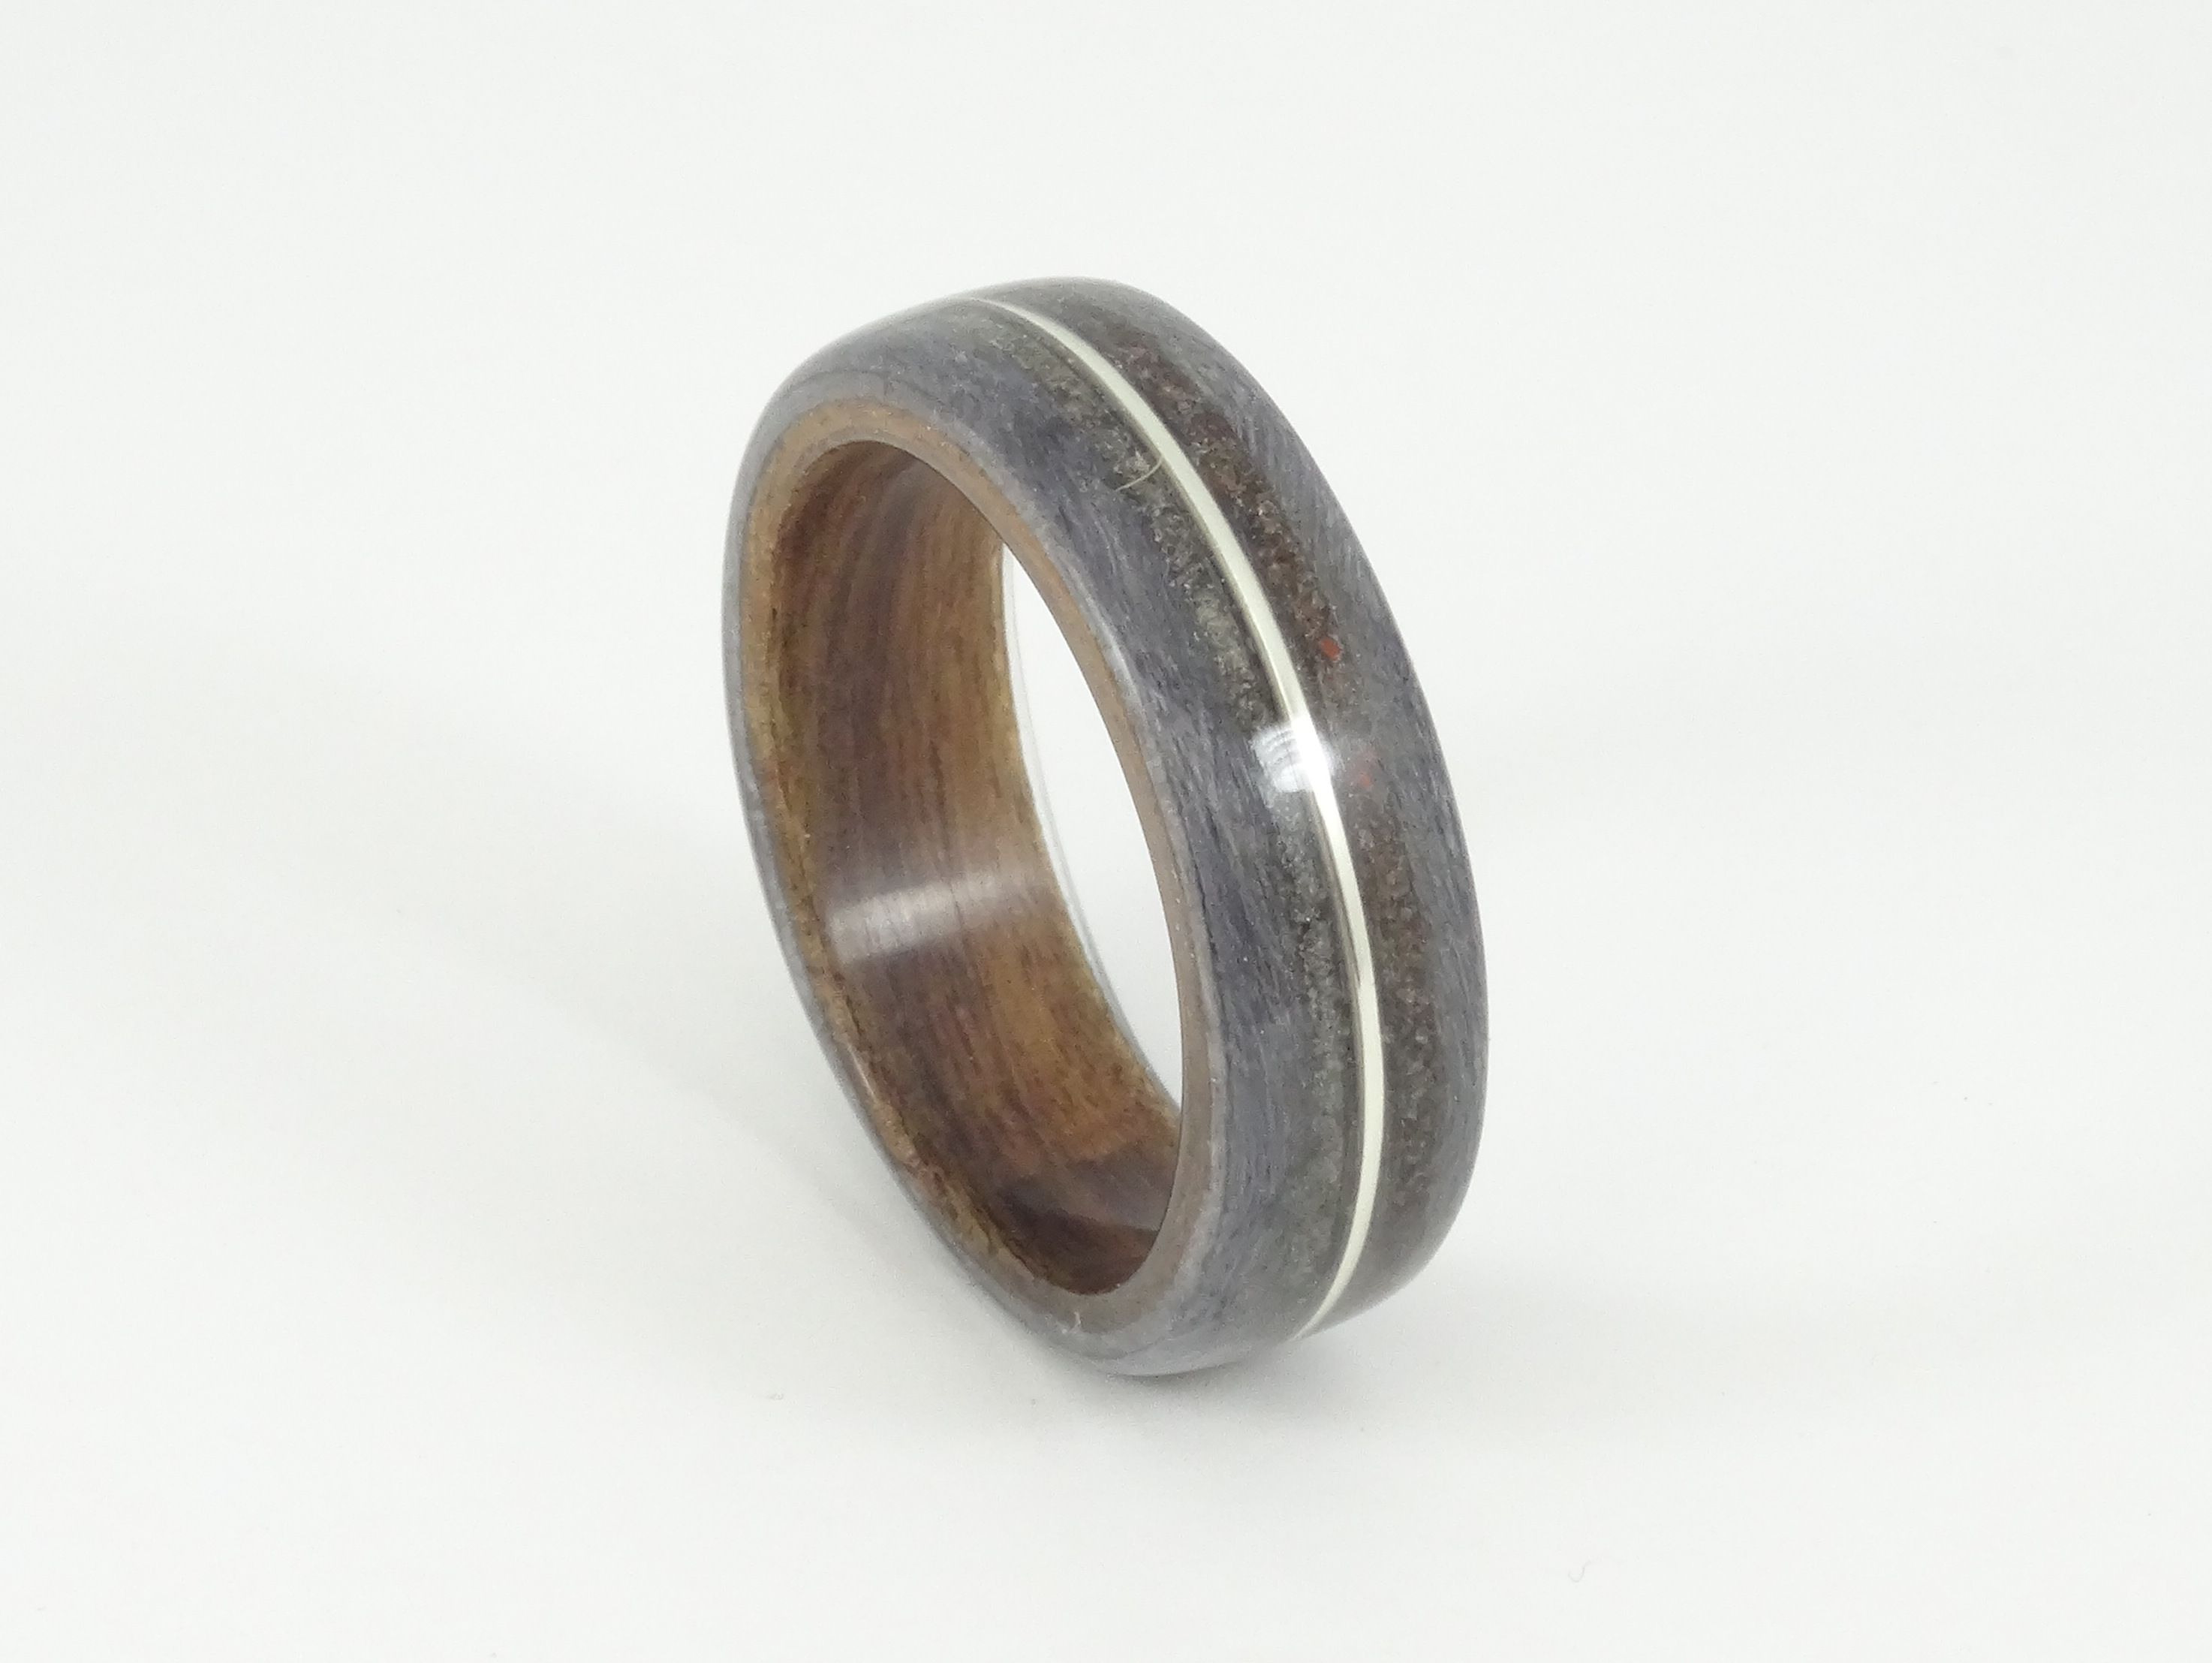 wood hammered and silver lathe rings youtube zebrano ring videos to a how home thumbnail make craft